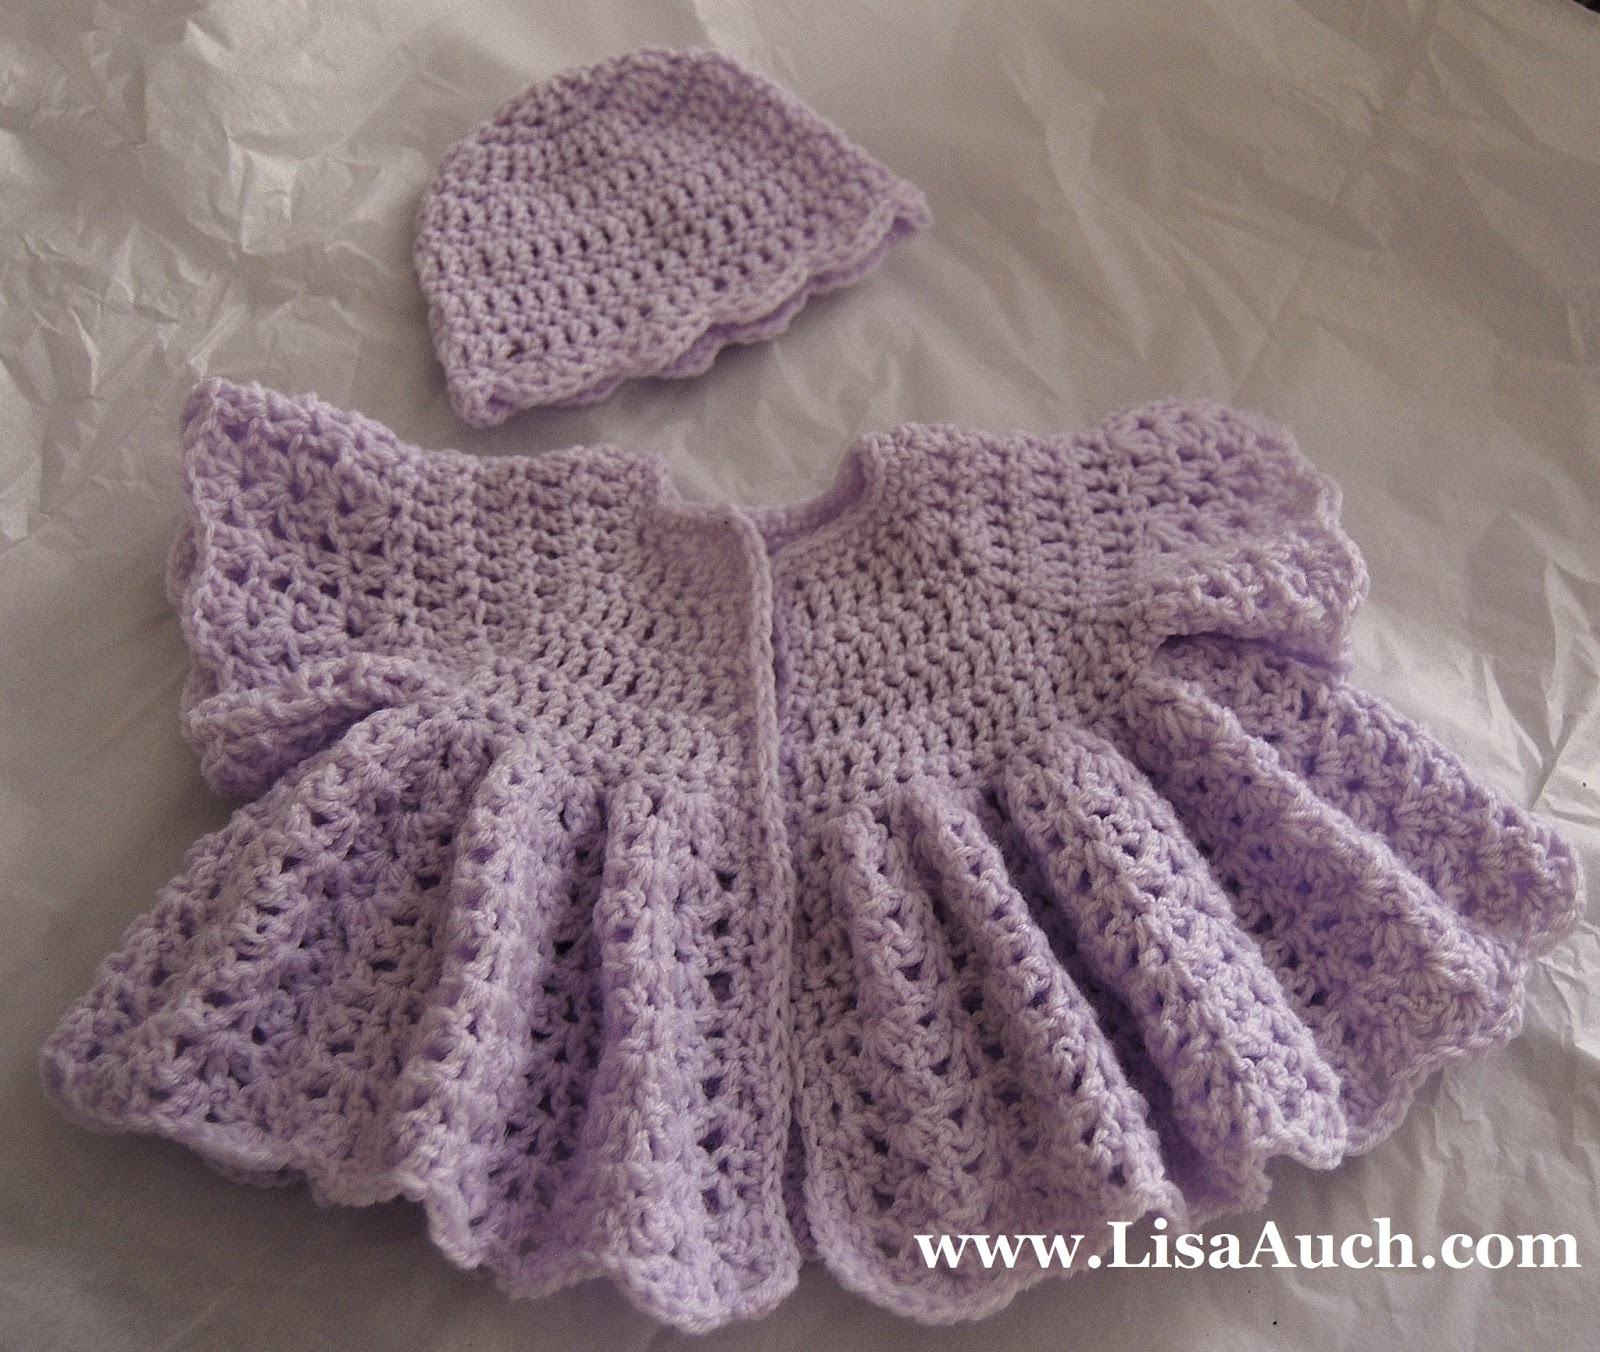 Free Crochet Sweater Patterns : Free Crochet Patterns-crochet baby layette patterns-baby sweater ...